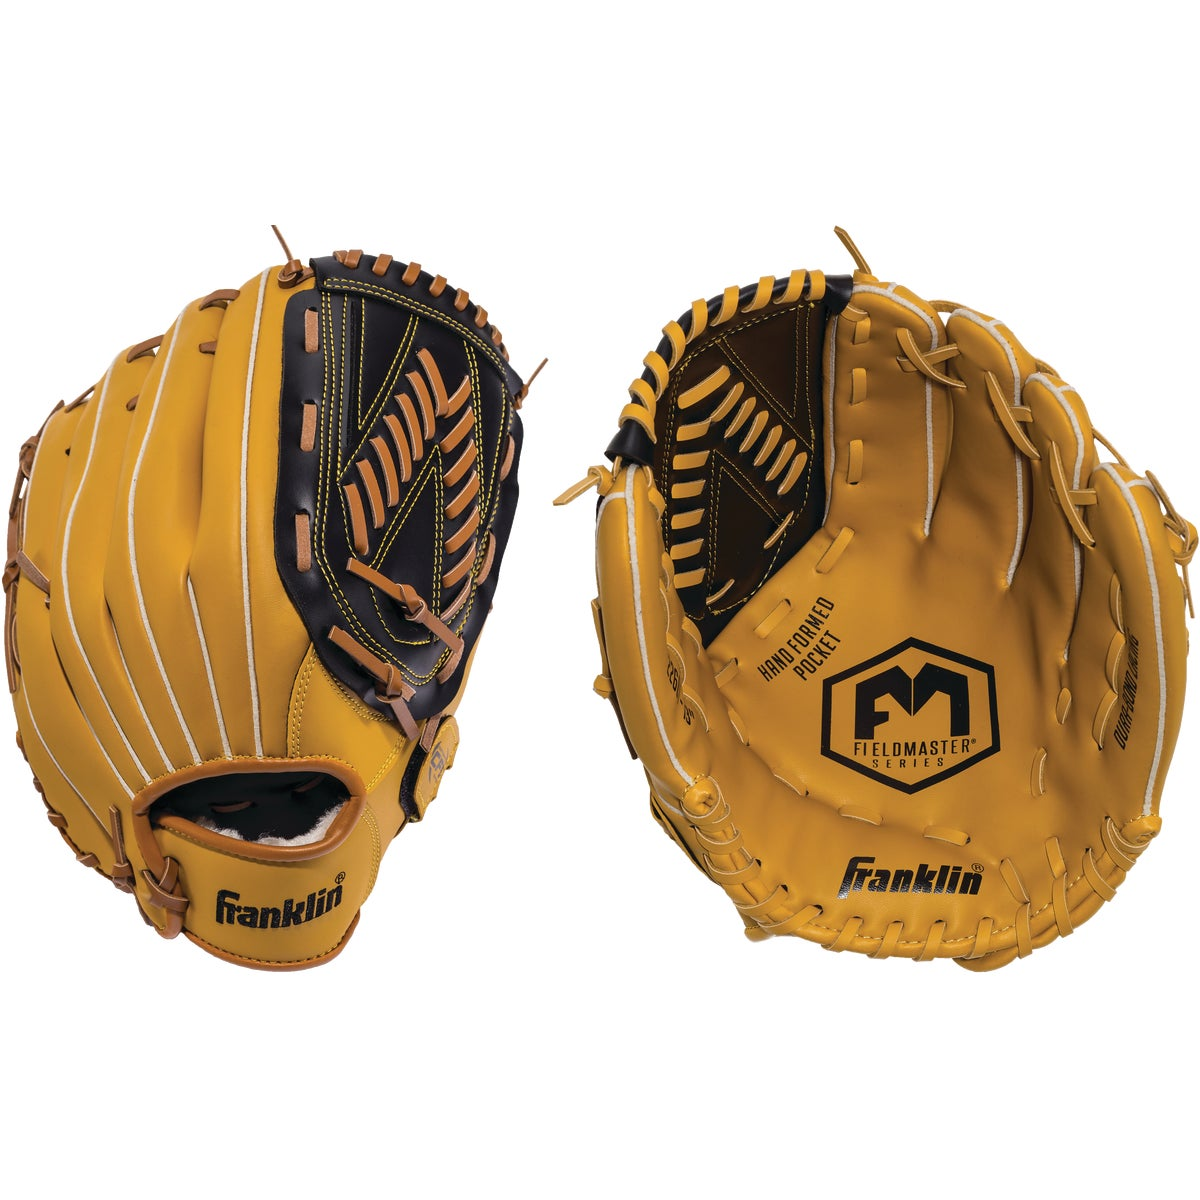 "13"" BASEBALL GLOVE - 22314 by Franklin Sports"